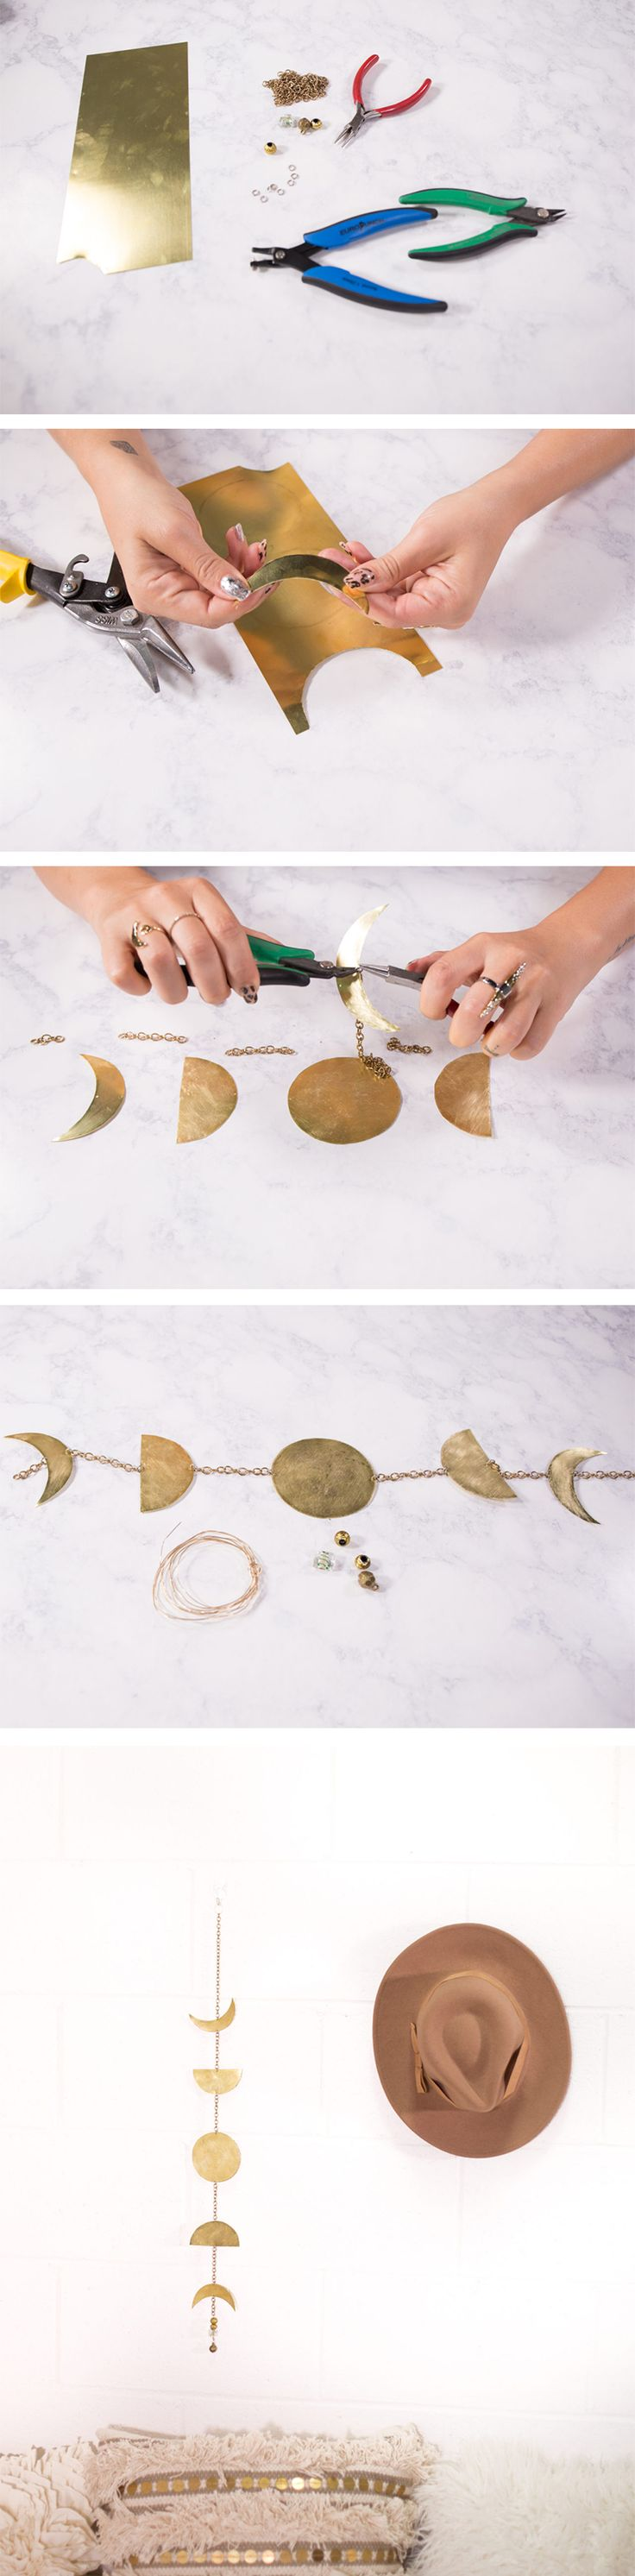 Sheet metal from the craft store & some basic jewelry making supplies are all you need to string together this lovely #DIY lunar home decor!                                                                                                                                                                                 More